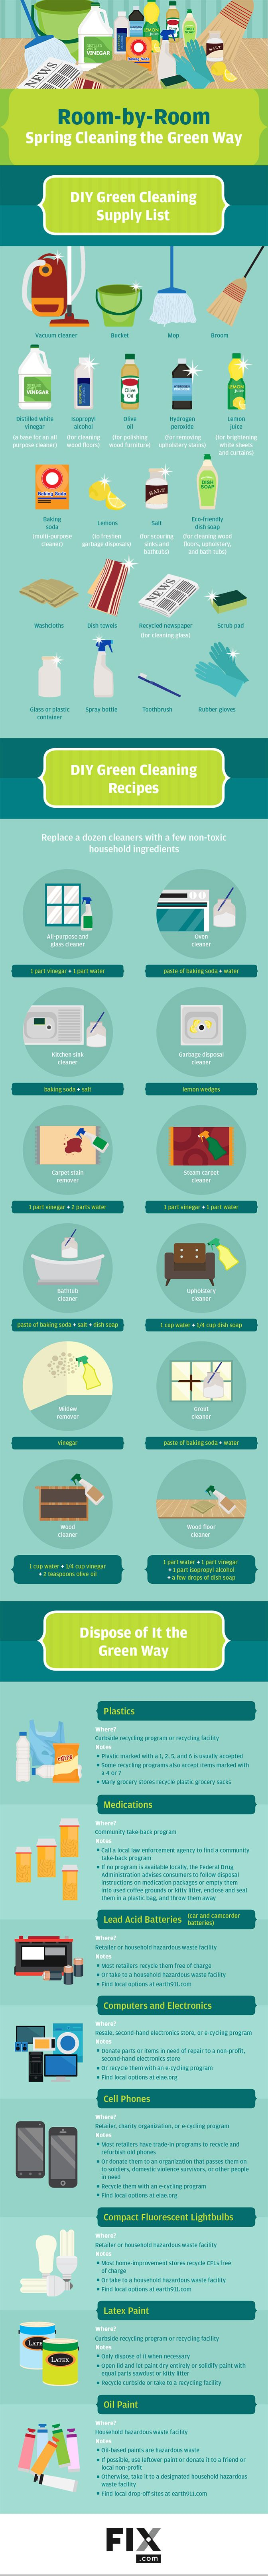 1684 best Cleaning tips images on Pinterest | Cleaning, Cleaning ...